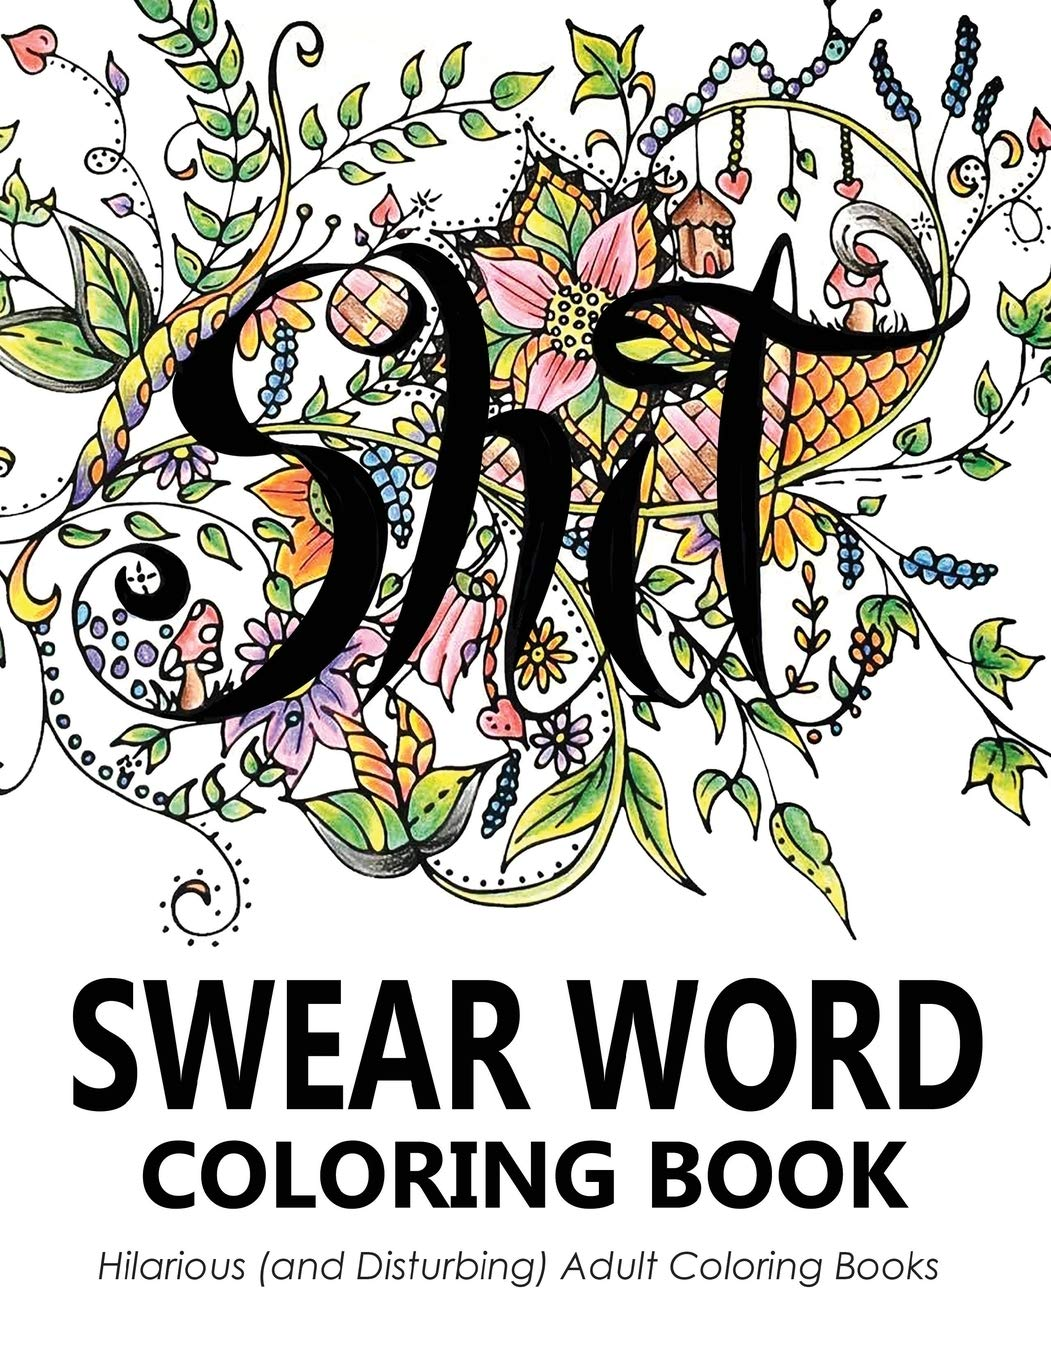 - Swear Word Coloring Book: Hilarious (and Disturbing) Adult